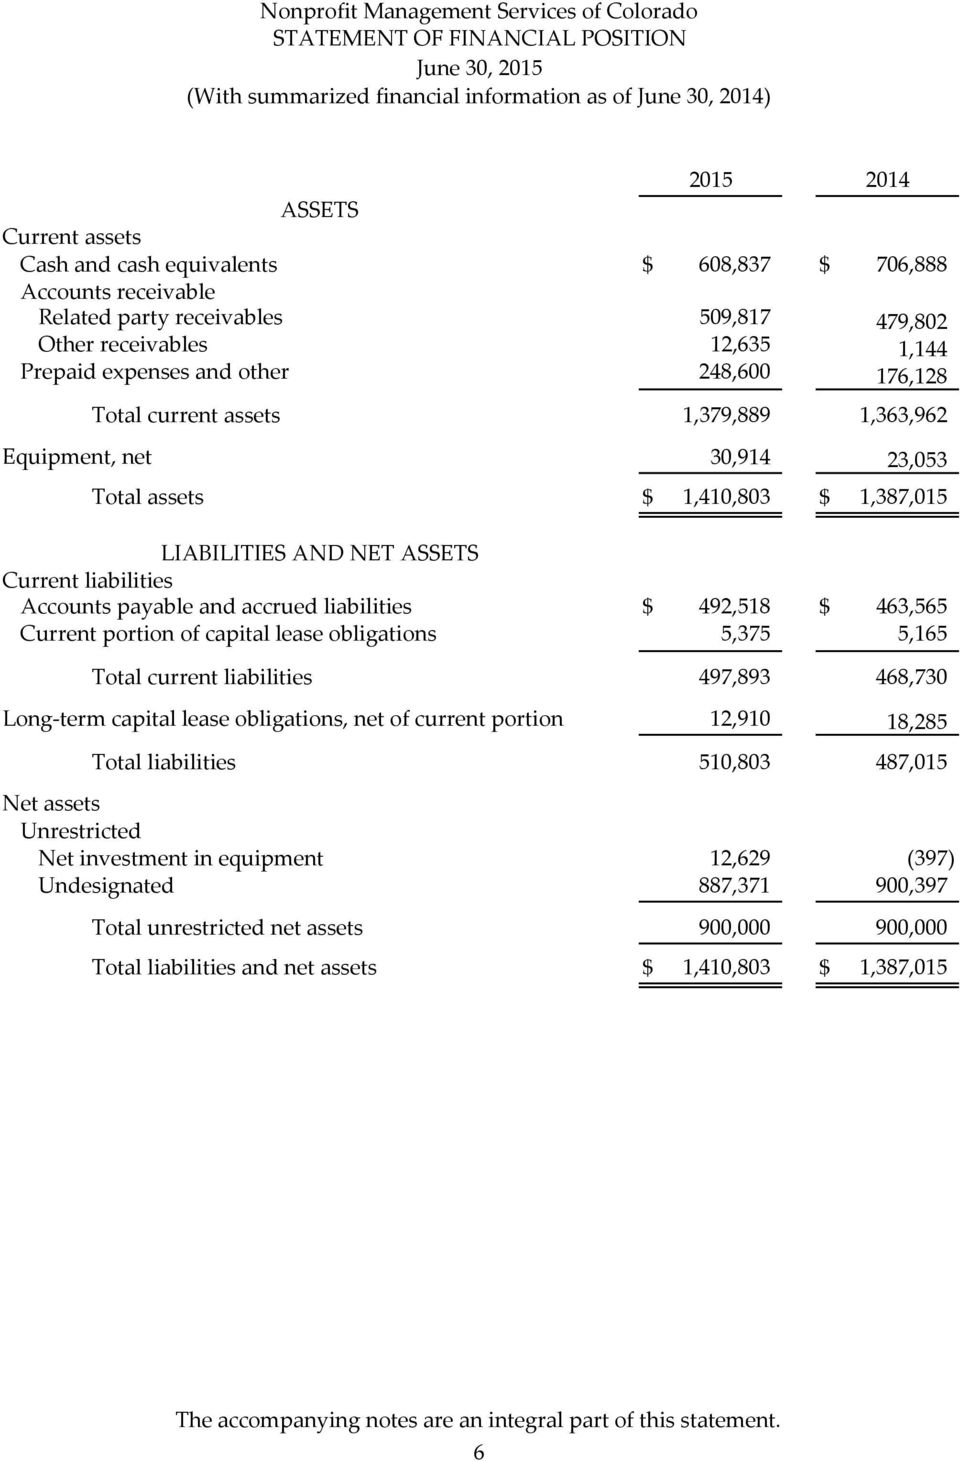 1,410,803 $ 1,387,015 LIABILITIES AND NET ASSETS Current liabilities Accounts payable and accrued liabilities $ 492,518 $ 463,565 Current portion of capital lease obligations 5,375 5,165 Total